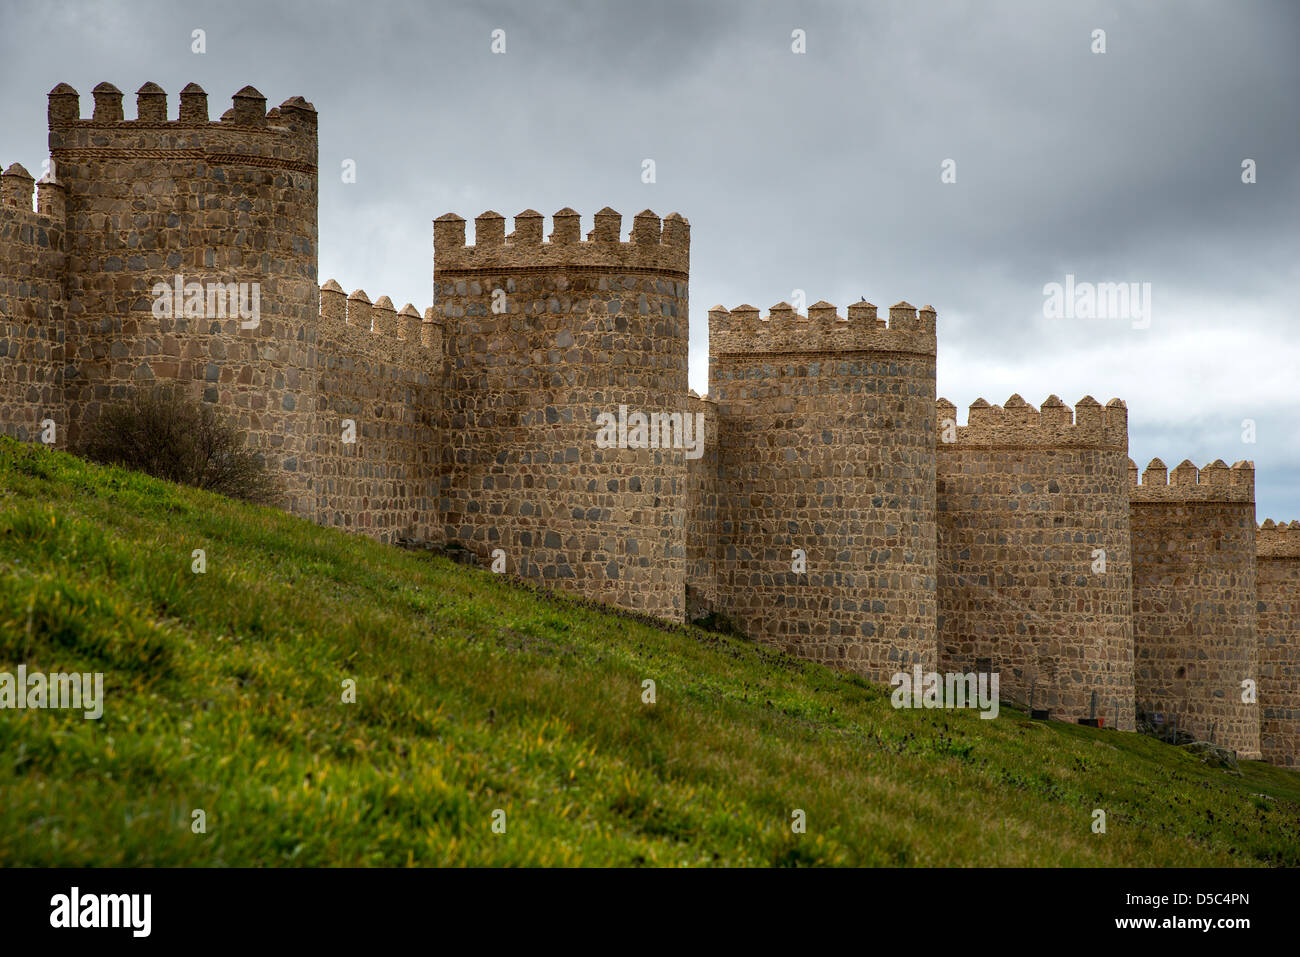 The medieval city walls of Avila, Castile and León, Spain - Stock Image